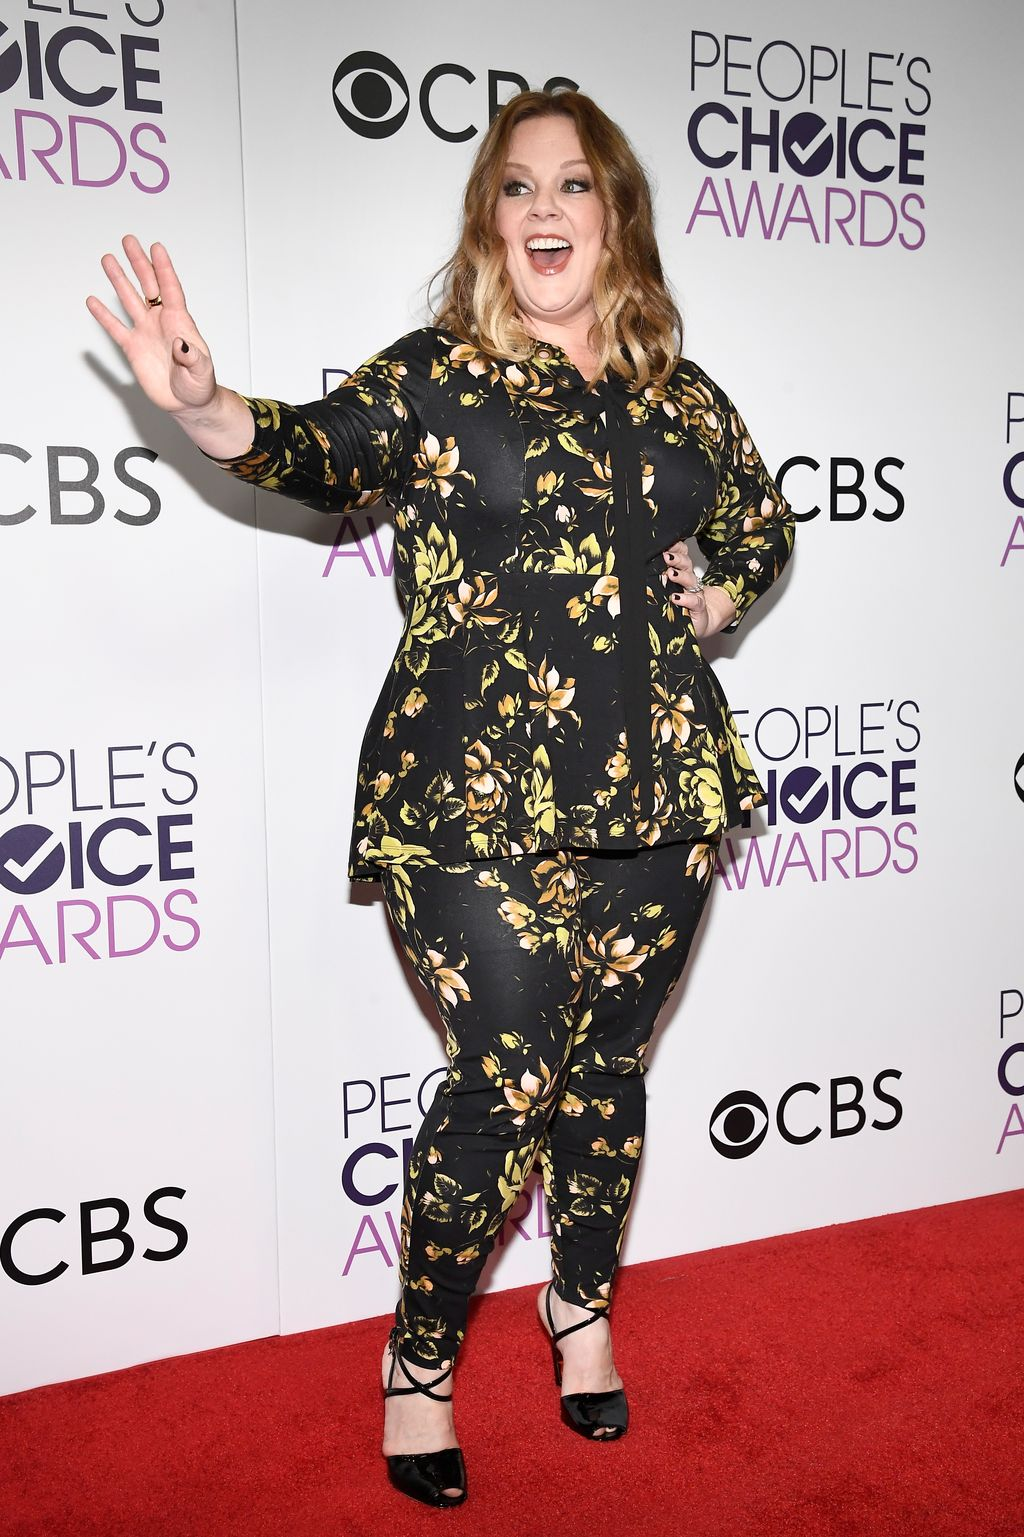 LOS ANGELES, CA - JANUARY 18:  Melissa McCarthy, winner of the Favorite Comedic Movie Actress Award, poses in the press room during the People's Choice Awards 2017 at Microsoft Theater on January 18, 2017 in Los Angeles, California.  (Photo by Kevork Djansezian/Getty Images)